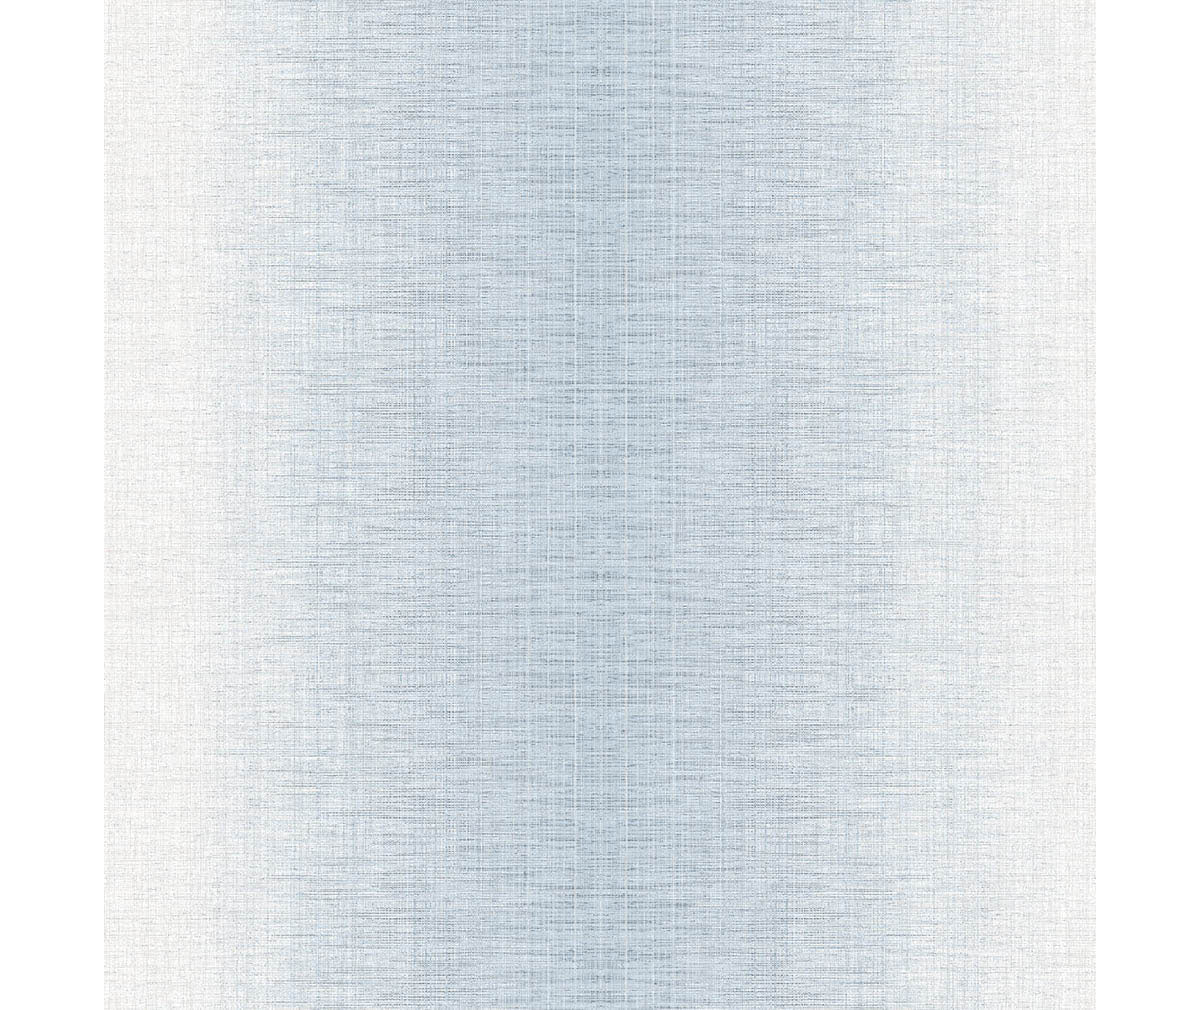 Stardust Light Blue Ombre Wallpaper available at Barrydowne Paint